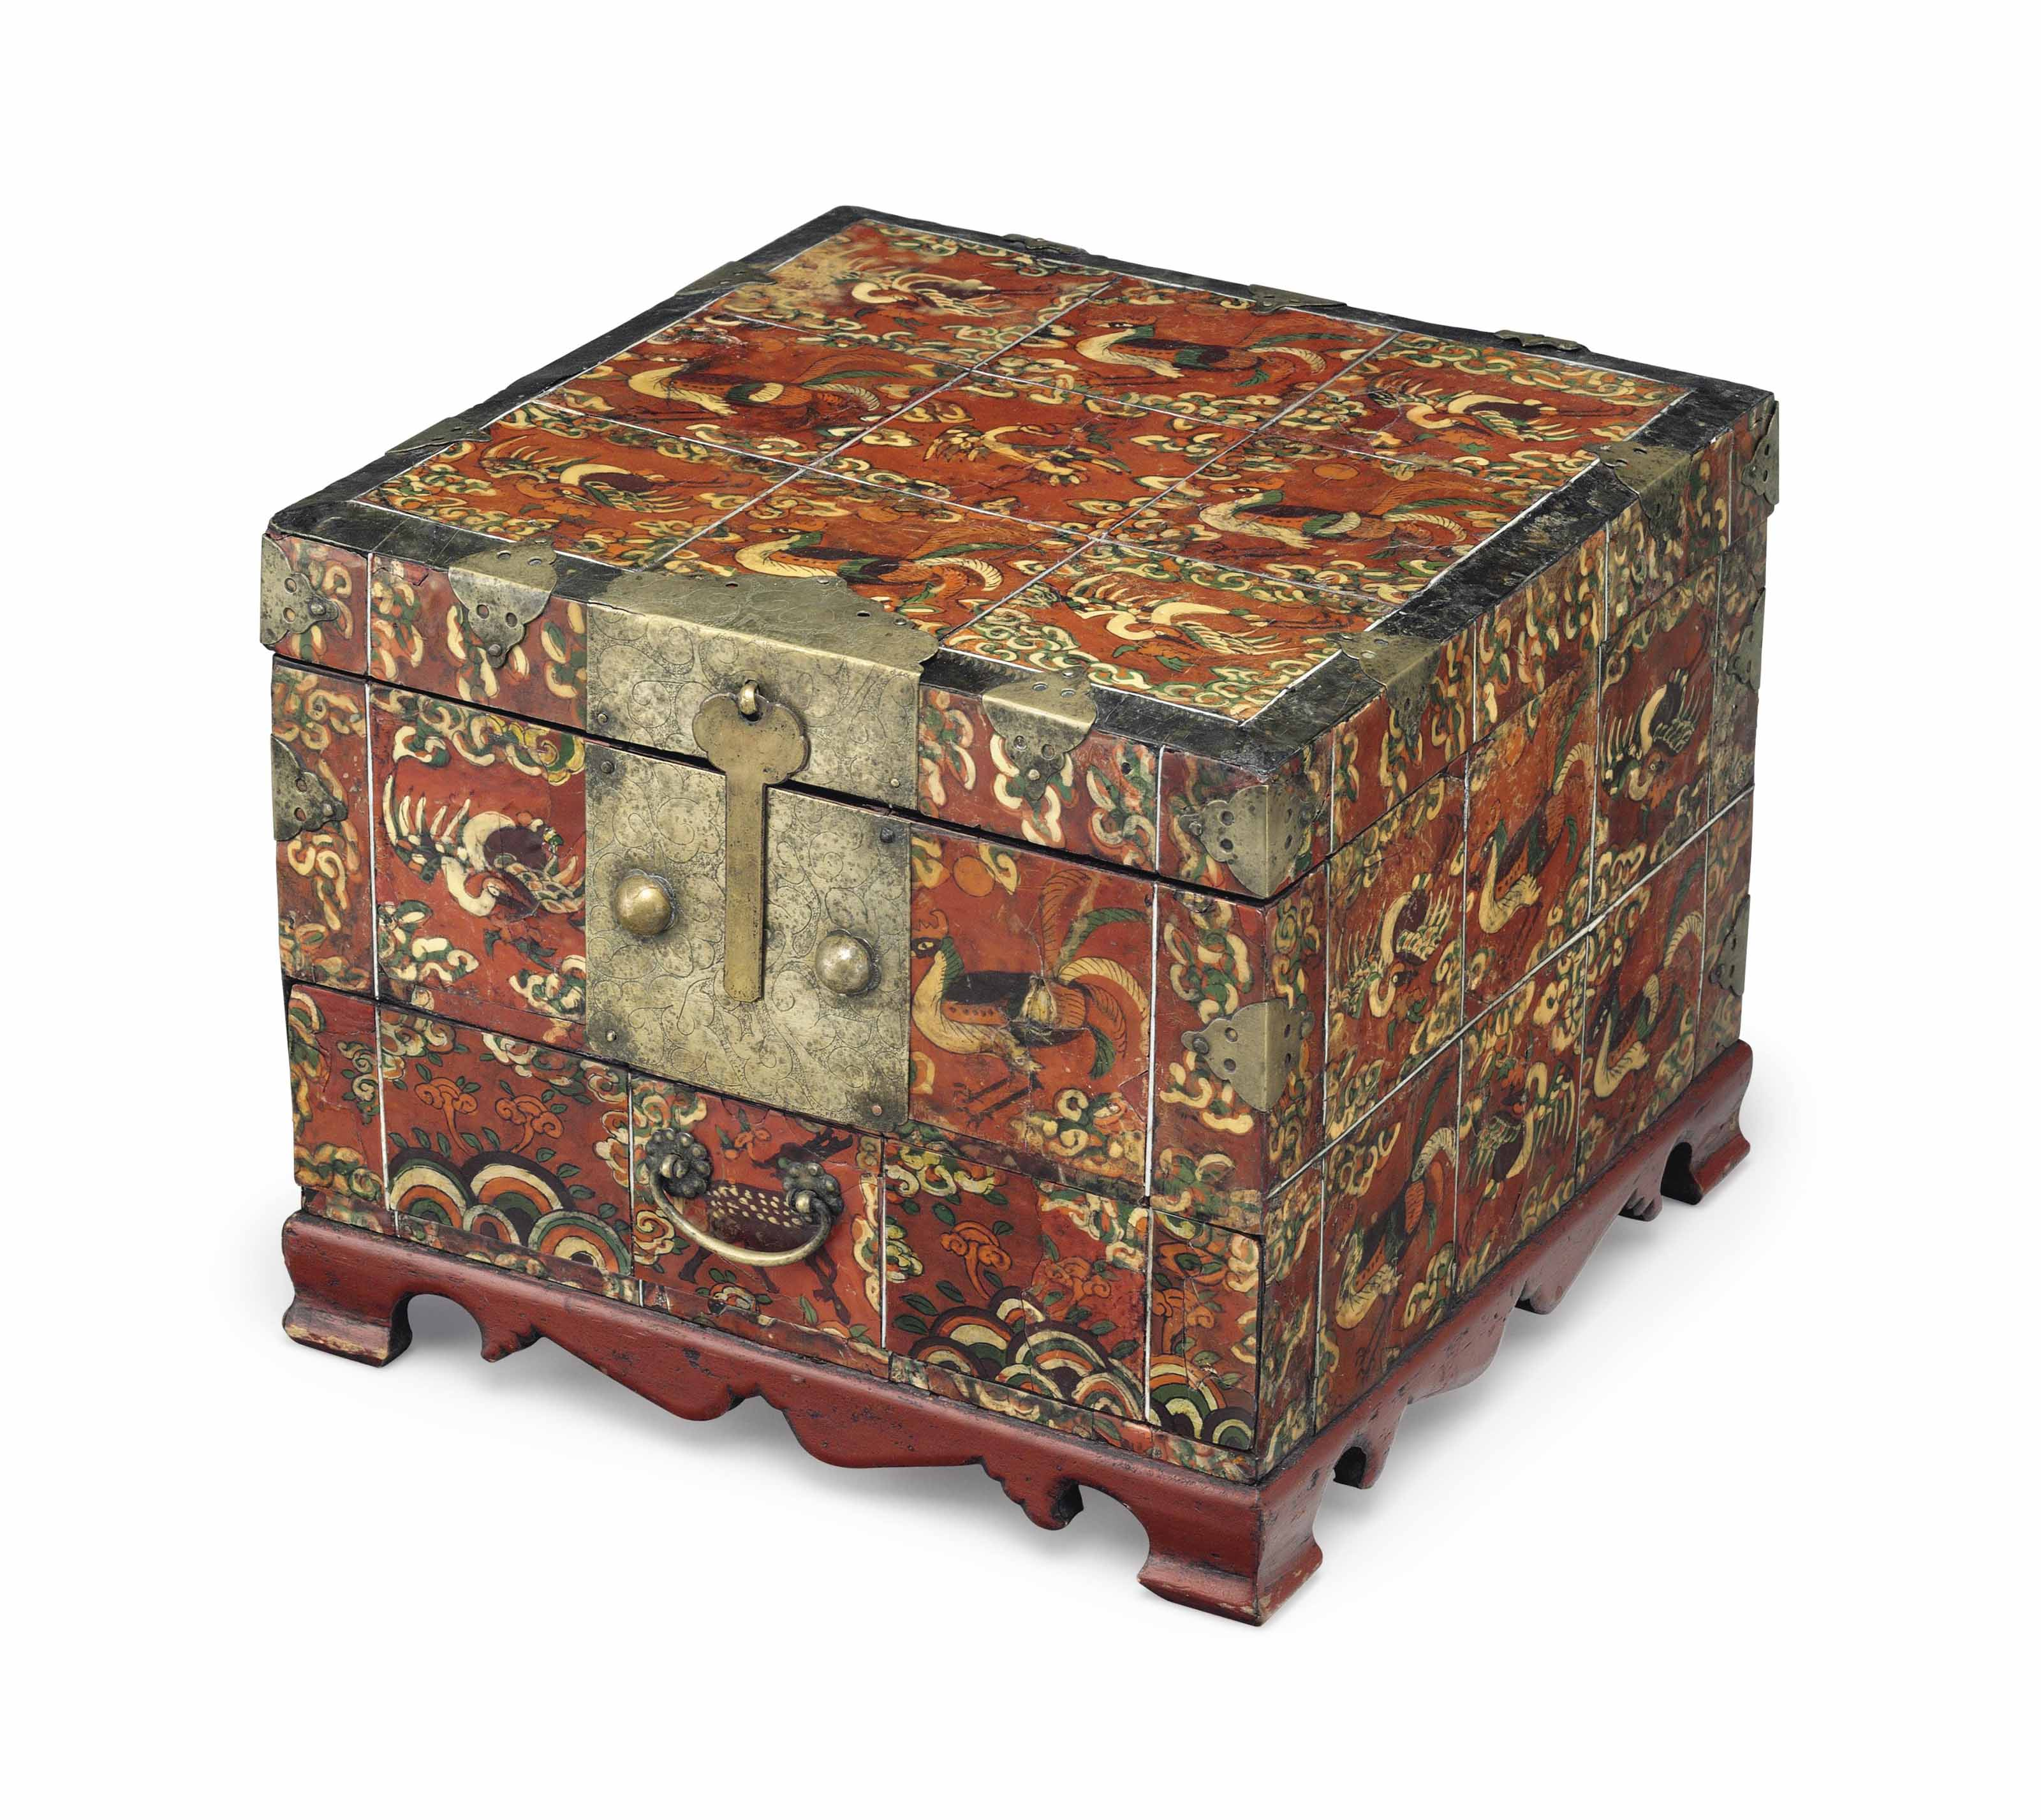 A Reverse-Painted Oxhorn-Applied Accessory Box (Hwagak haem)